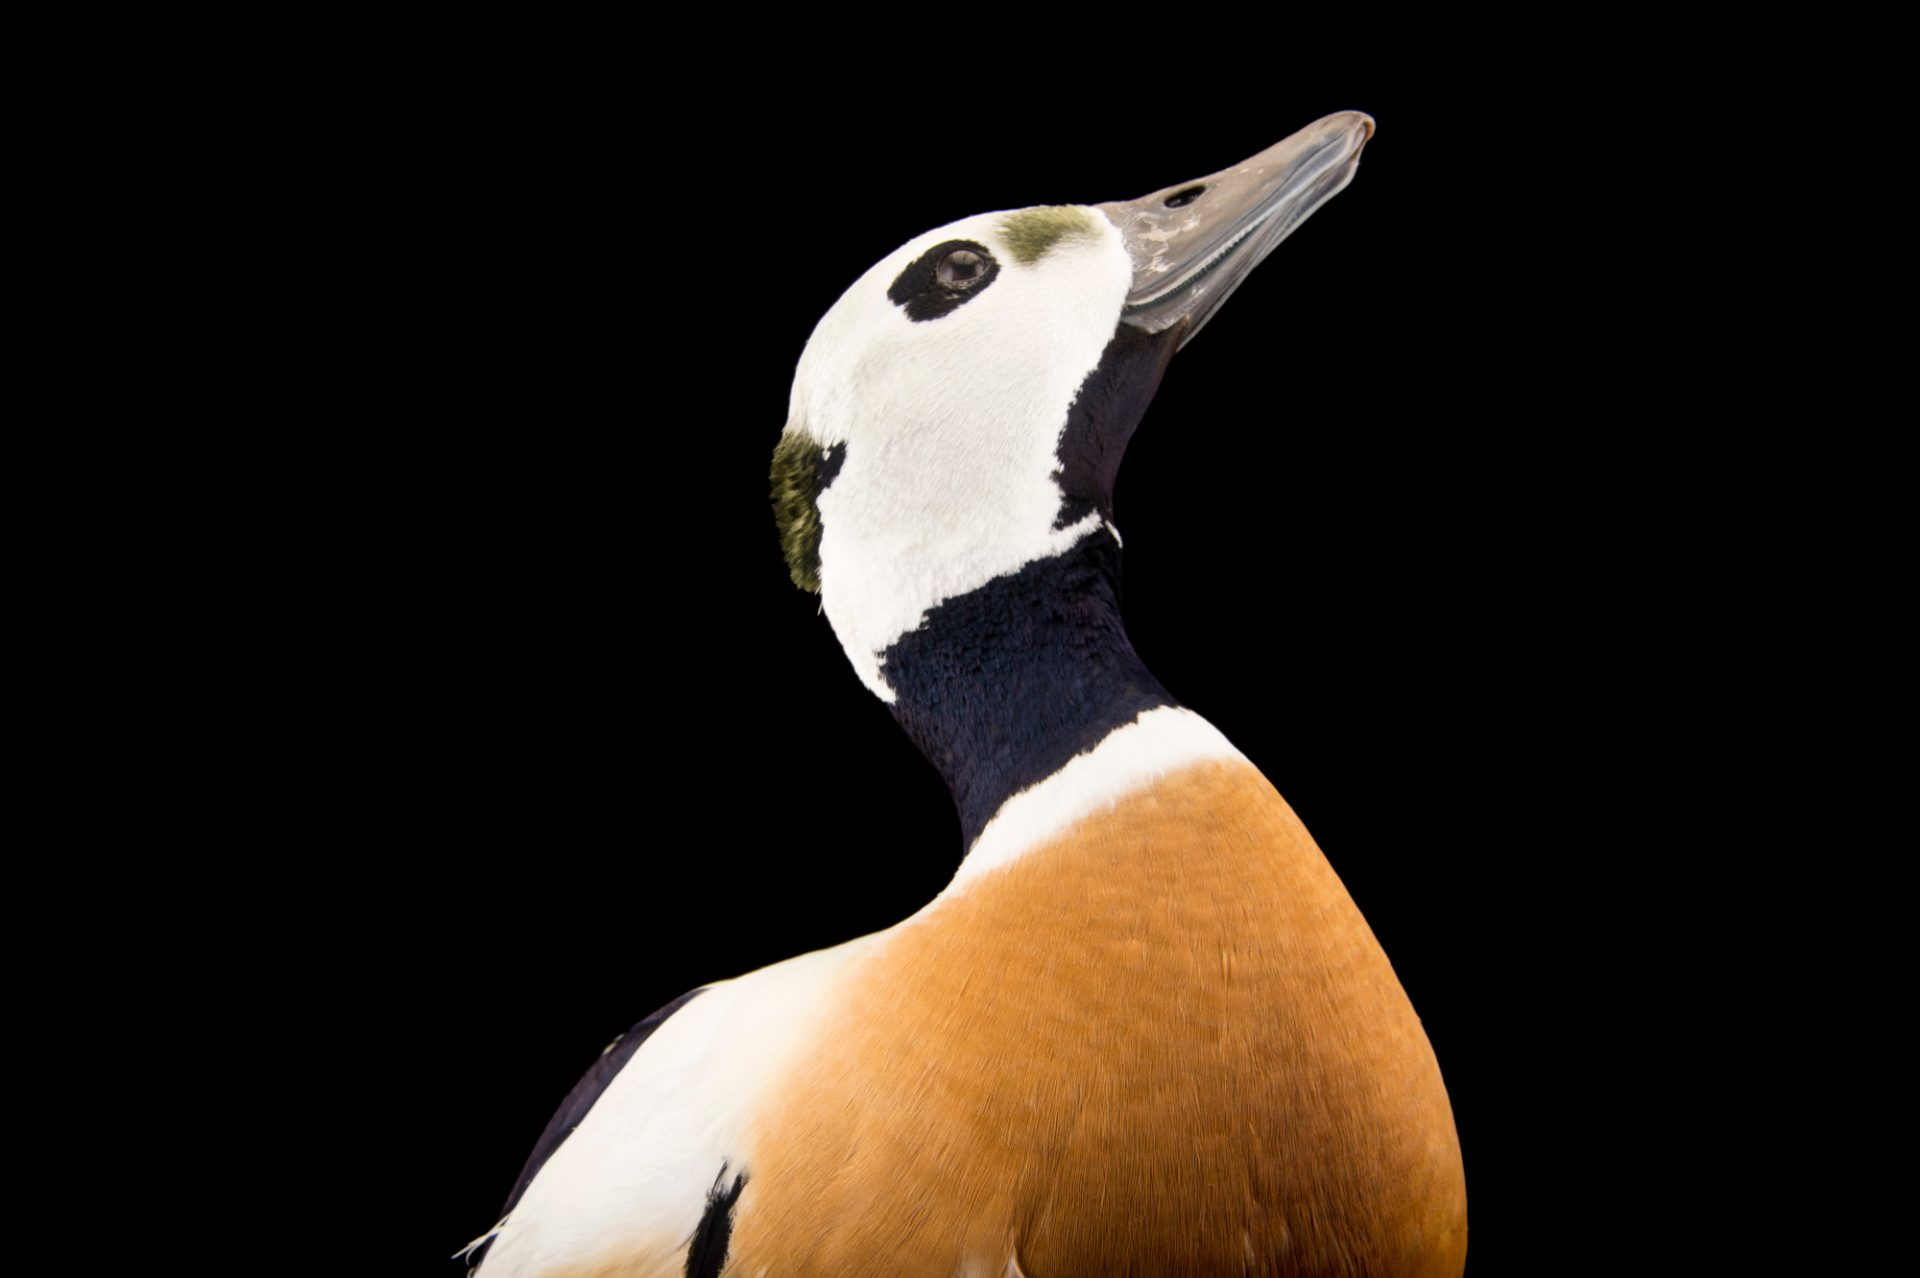 Photo: A vulnerable, federally threatened male Steller's eider (Polysticta stelleri) at the Alaska SeaLife Center.